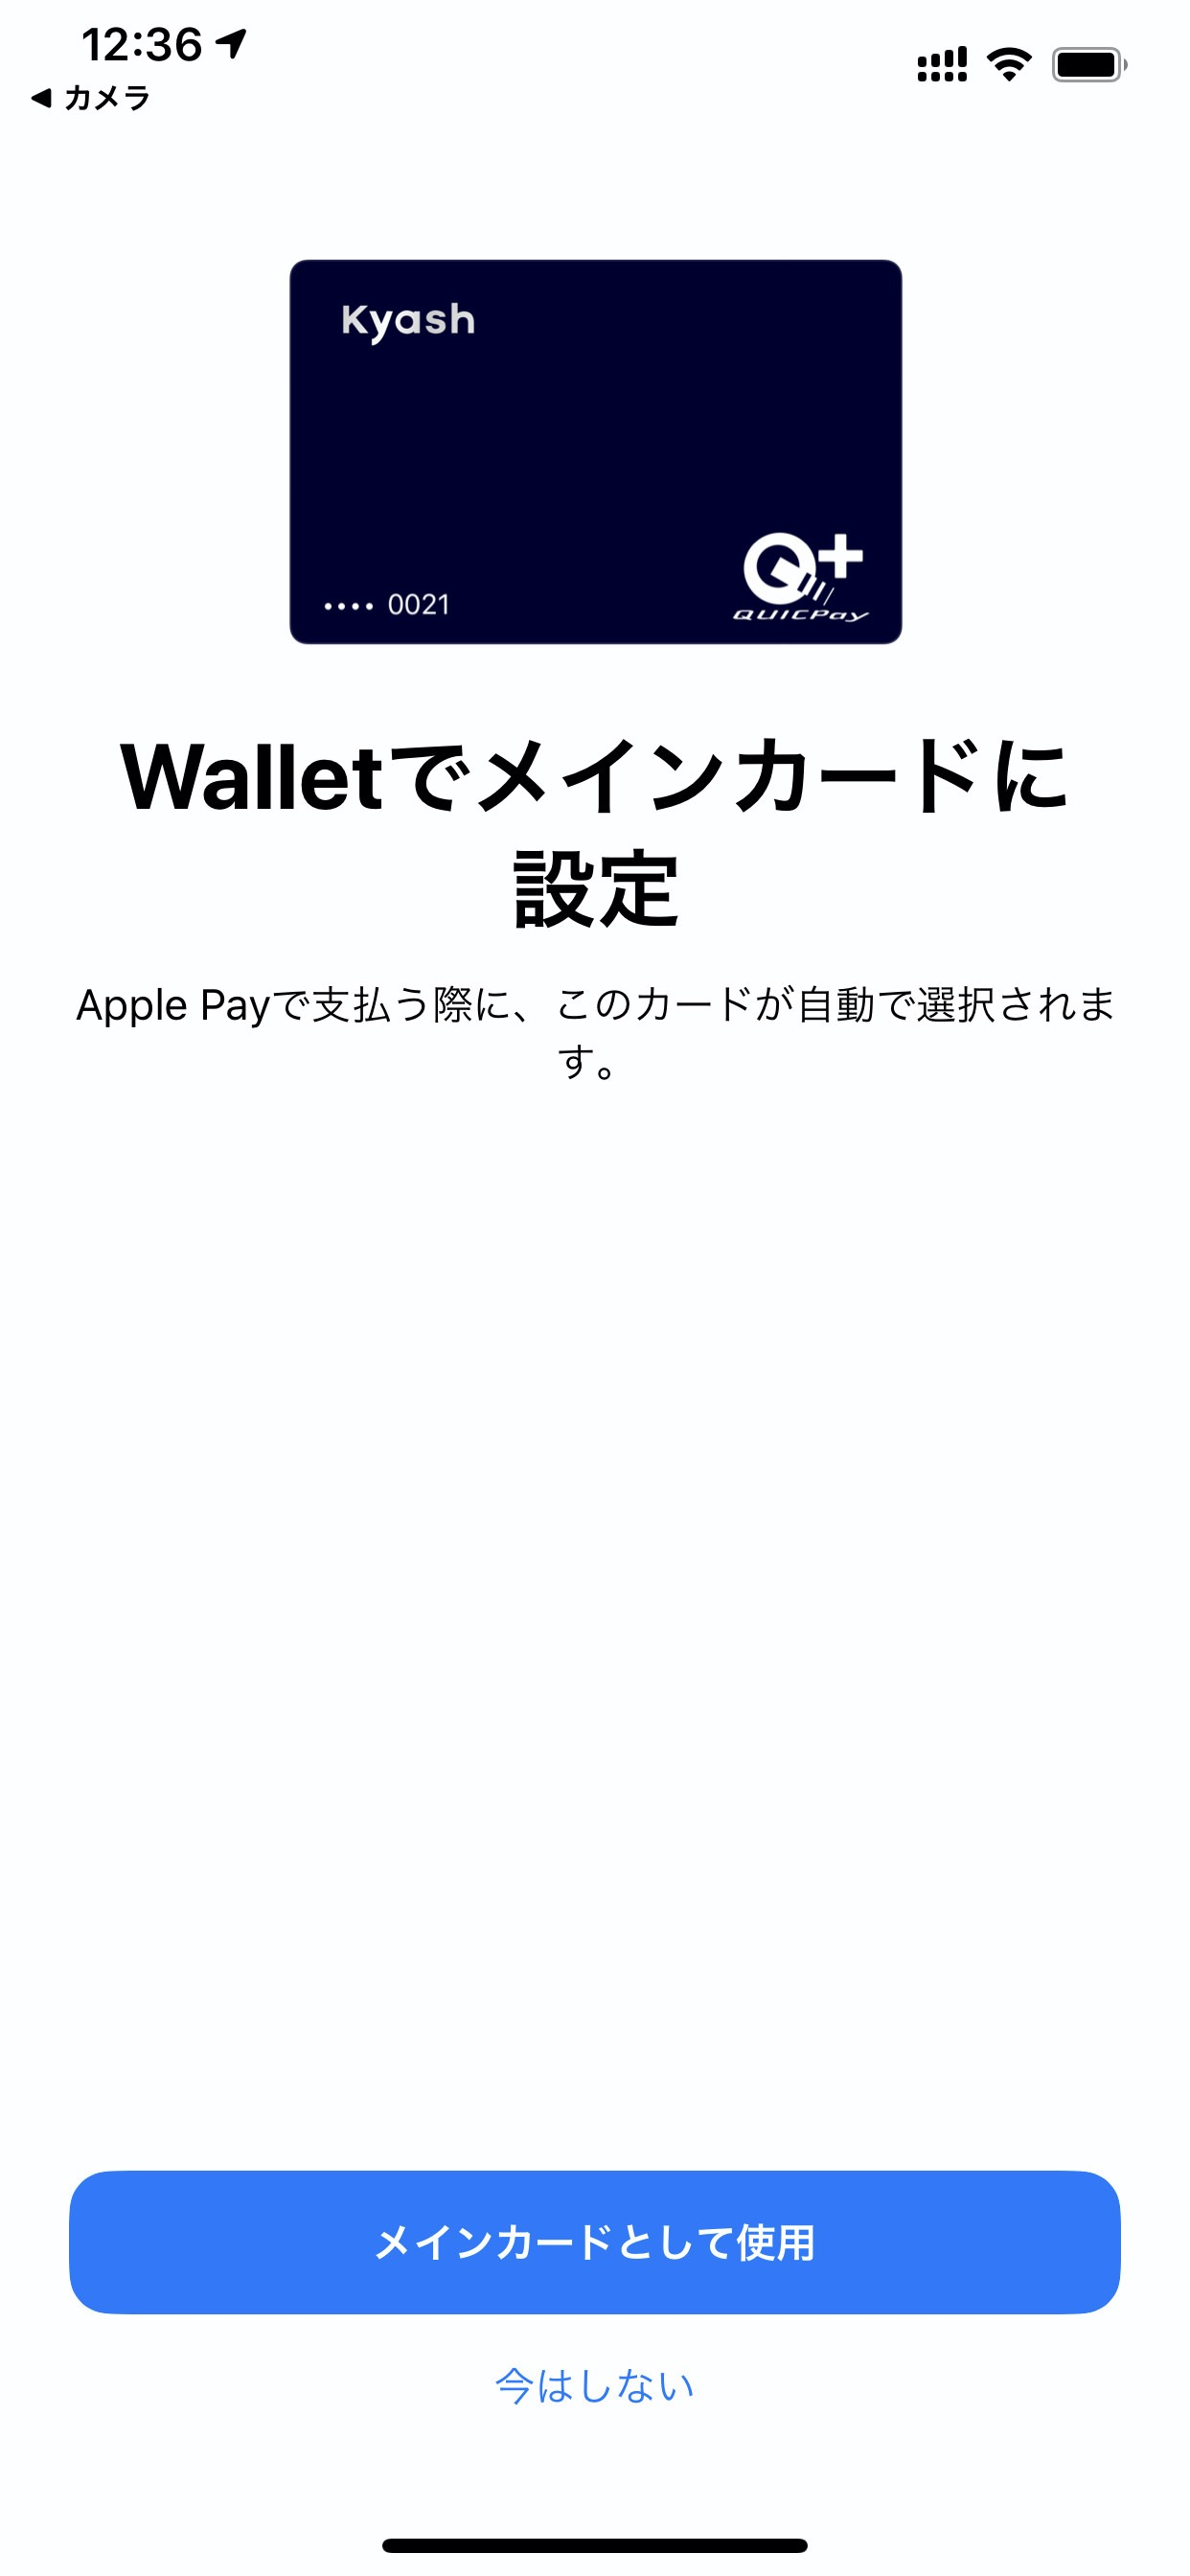 「Kyash Card」カード有効化&Apple Pay 14